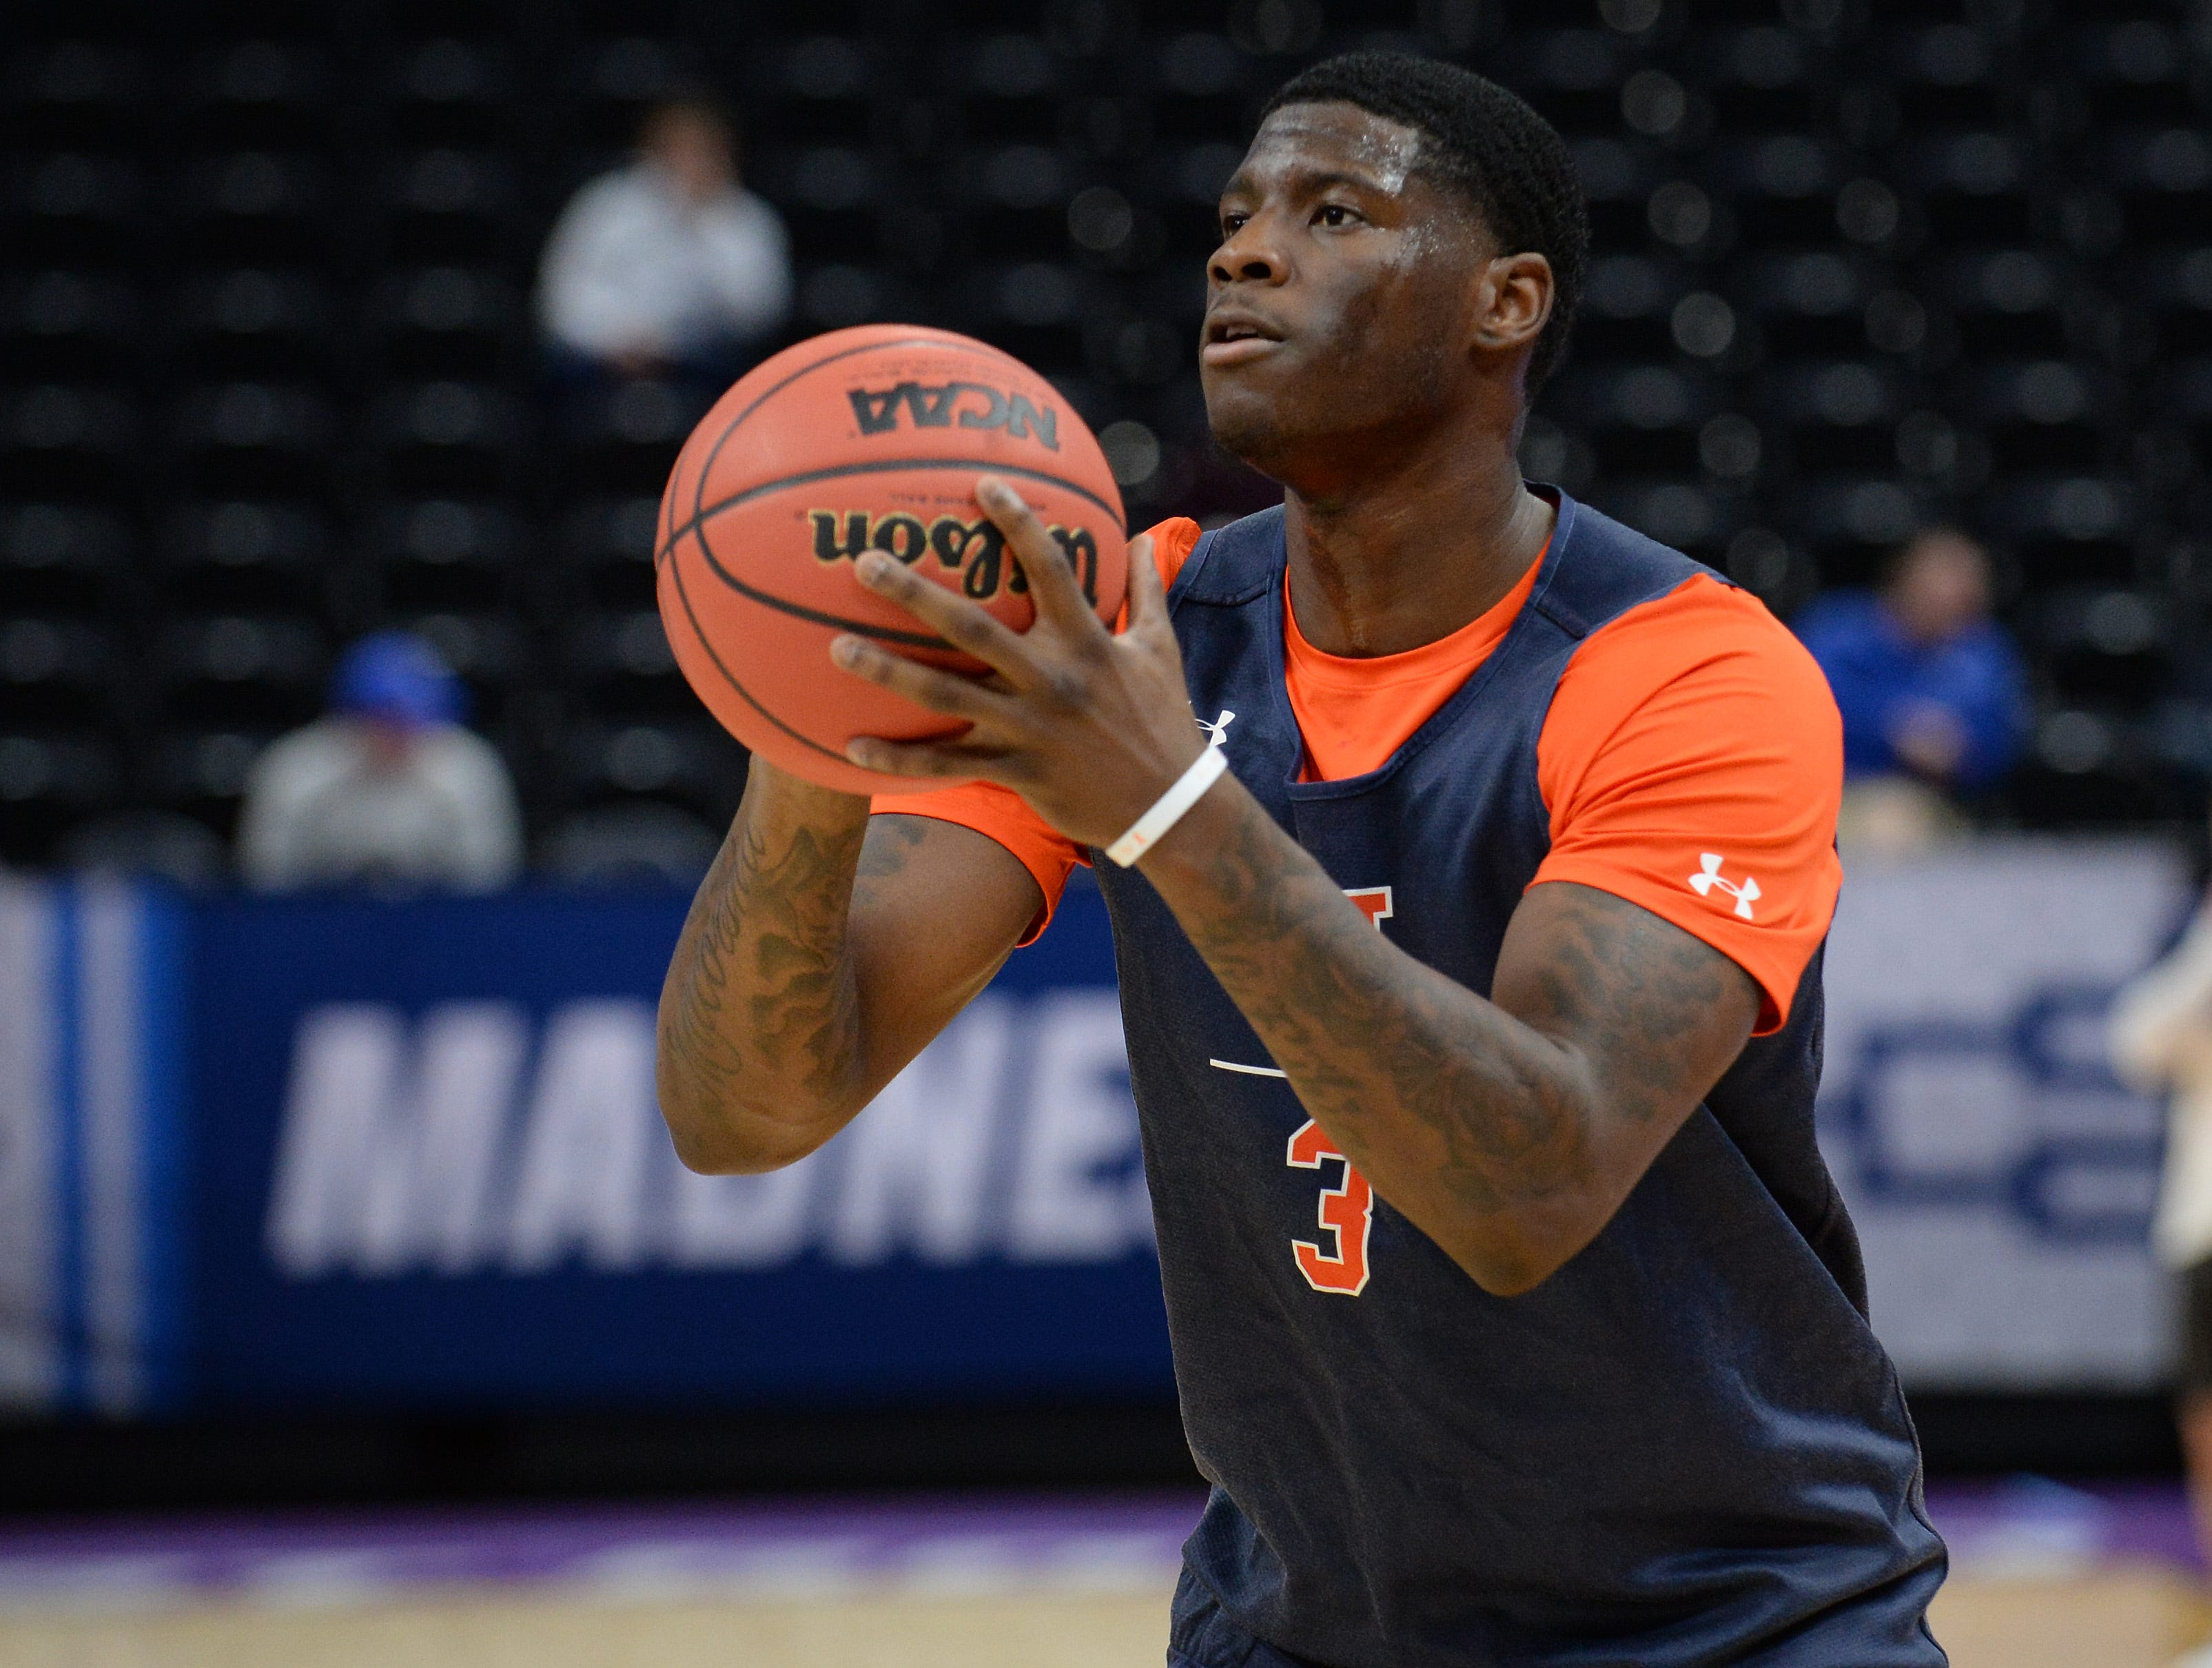 March 20, 2019; Salt Lake City, UT, USA; Auburn Tigers forward Danjel Purifoy (3) shoots during practice before the first round of the 2019 NCAA Tournament at Vivint Smart Home Arena. Mandatory Credit: Gary A. Vasquez-USA TODAY Sports